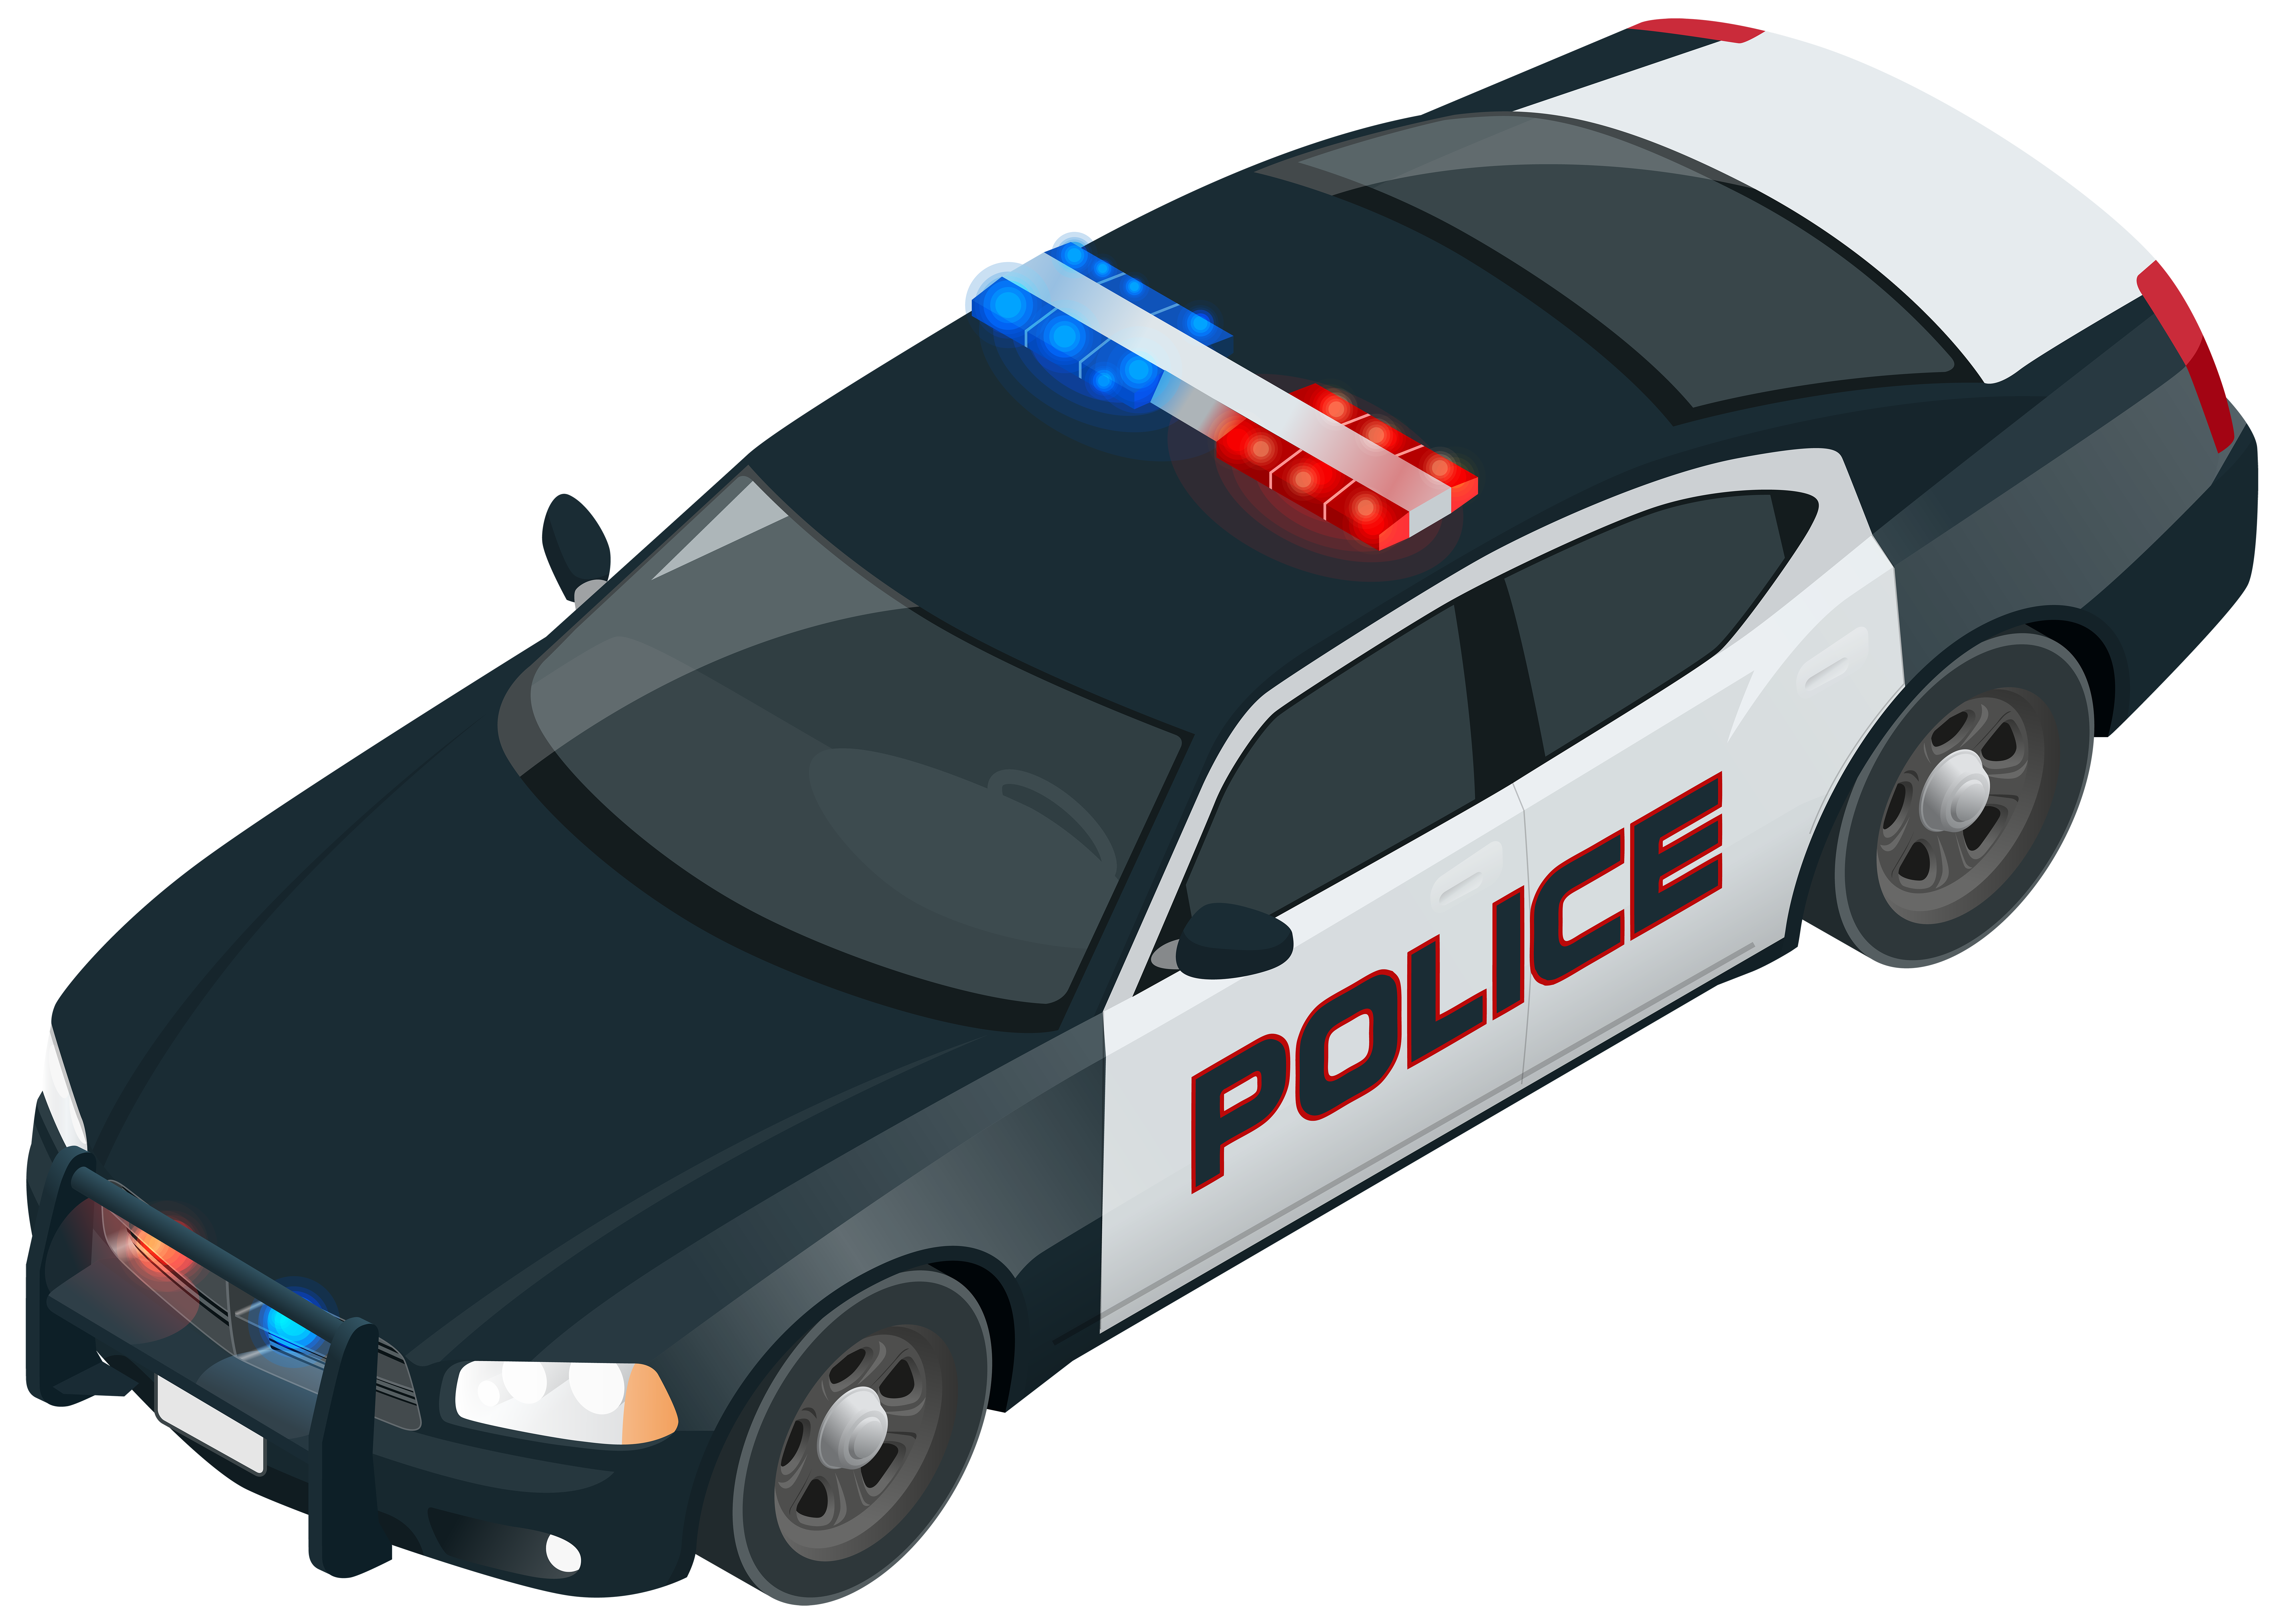 Police officer car clipart image freeuse download Police car Police officer - Police Car PNG Clip Art Image 8000*5689 ... image freeuse download